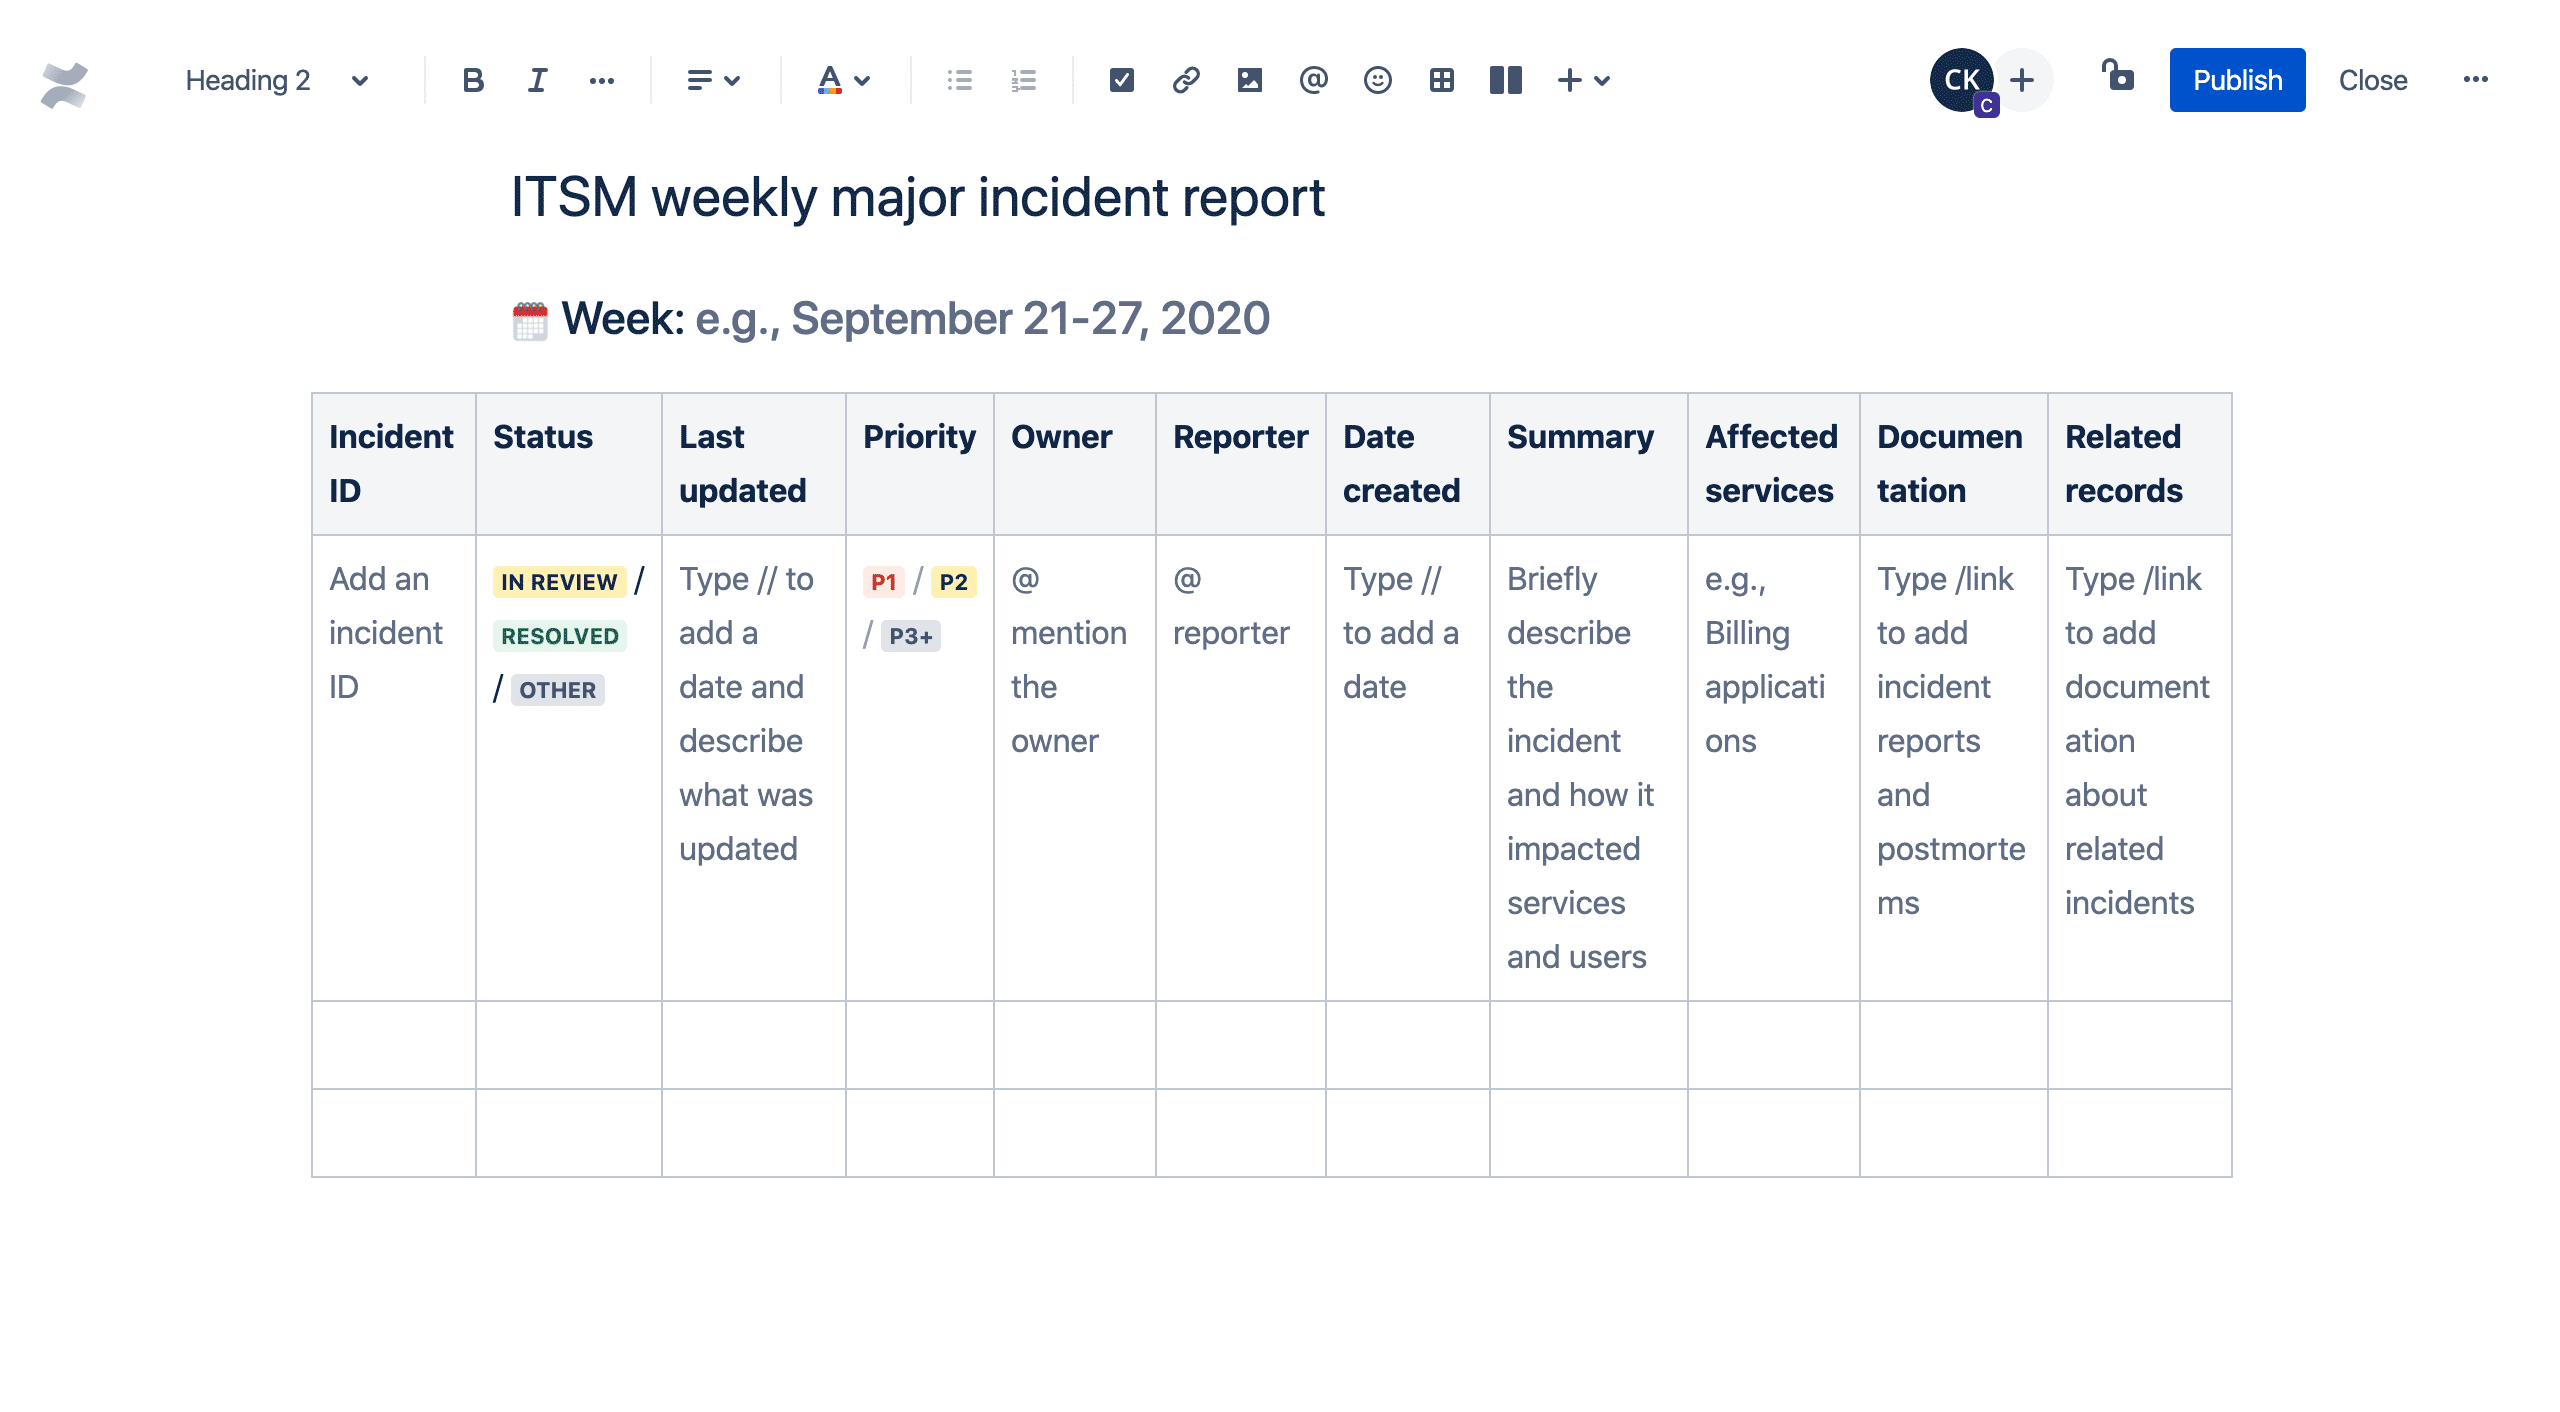 ITSM weekly major incident report template